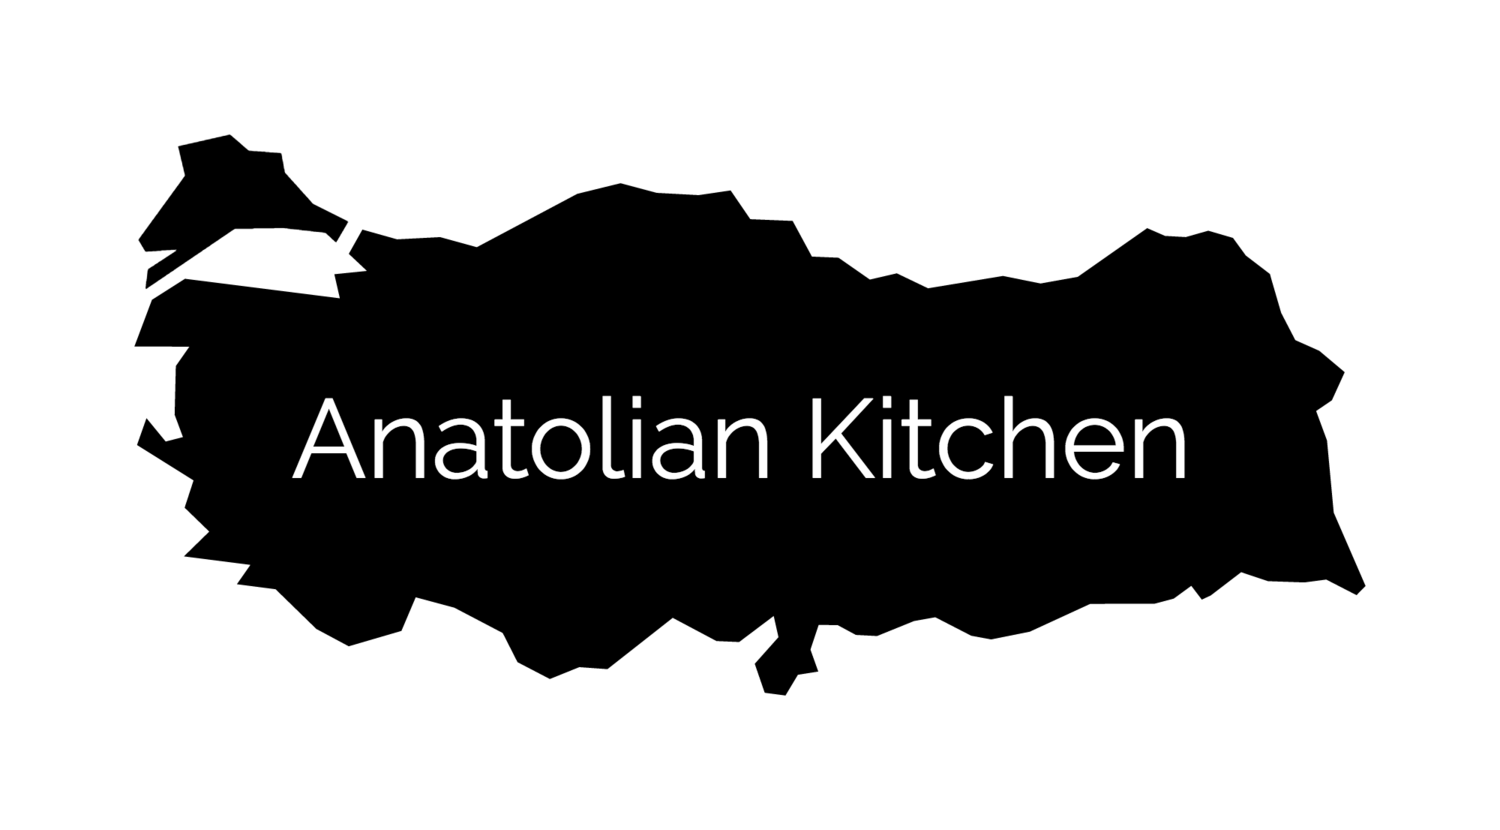 Anatolian Kitchen